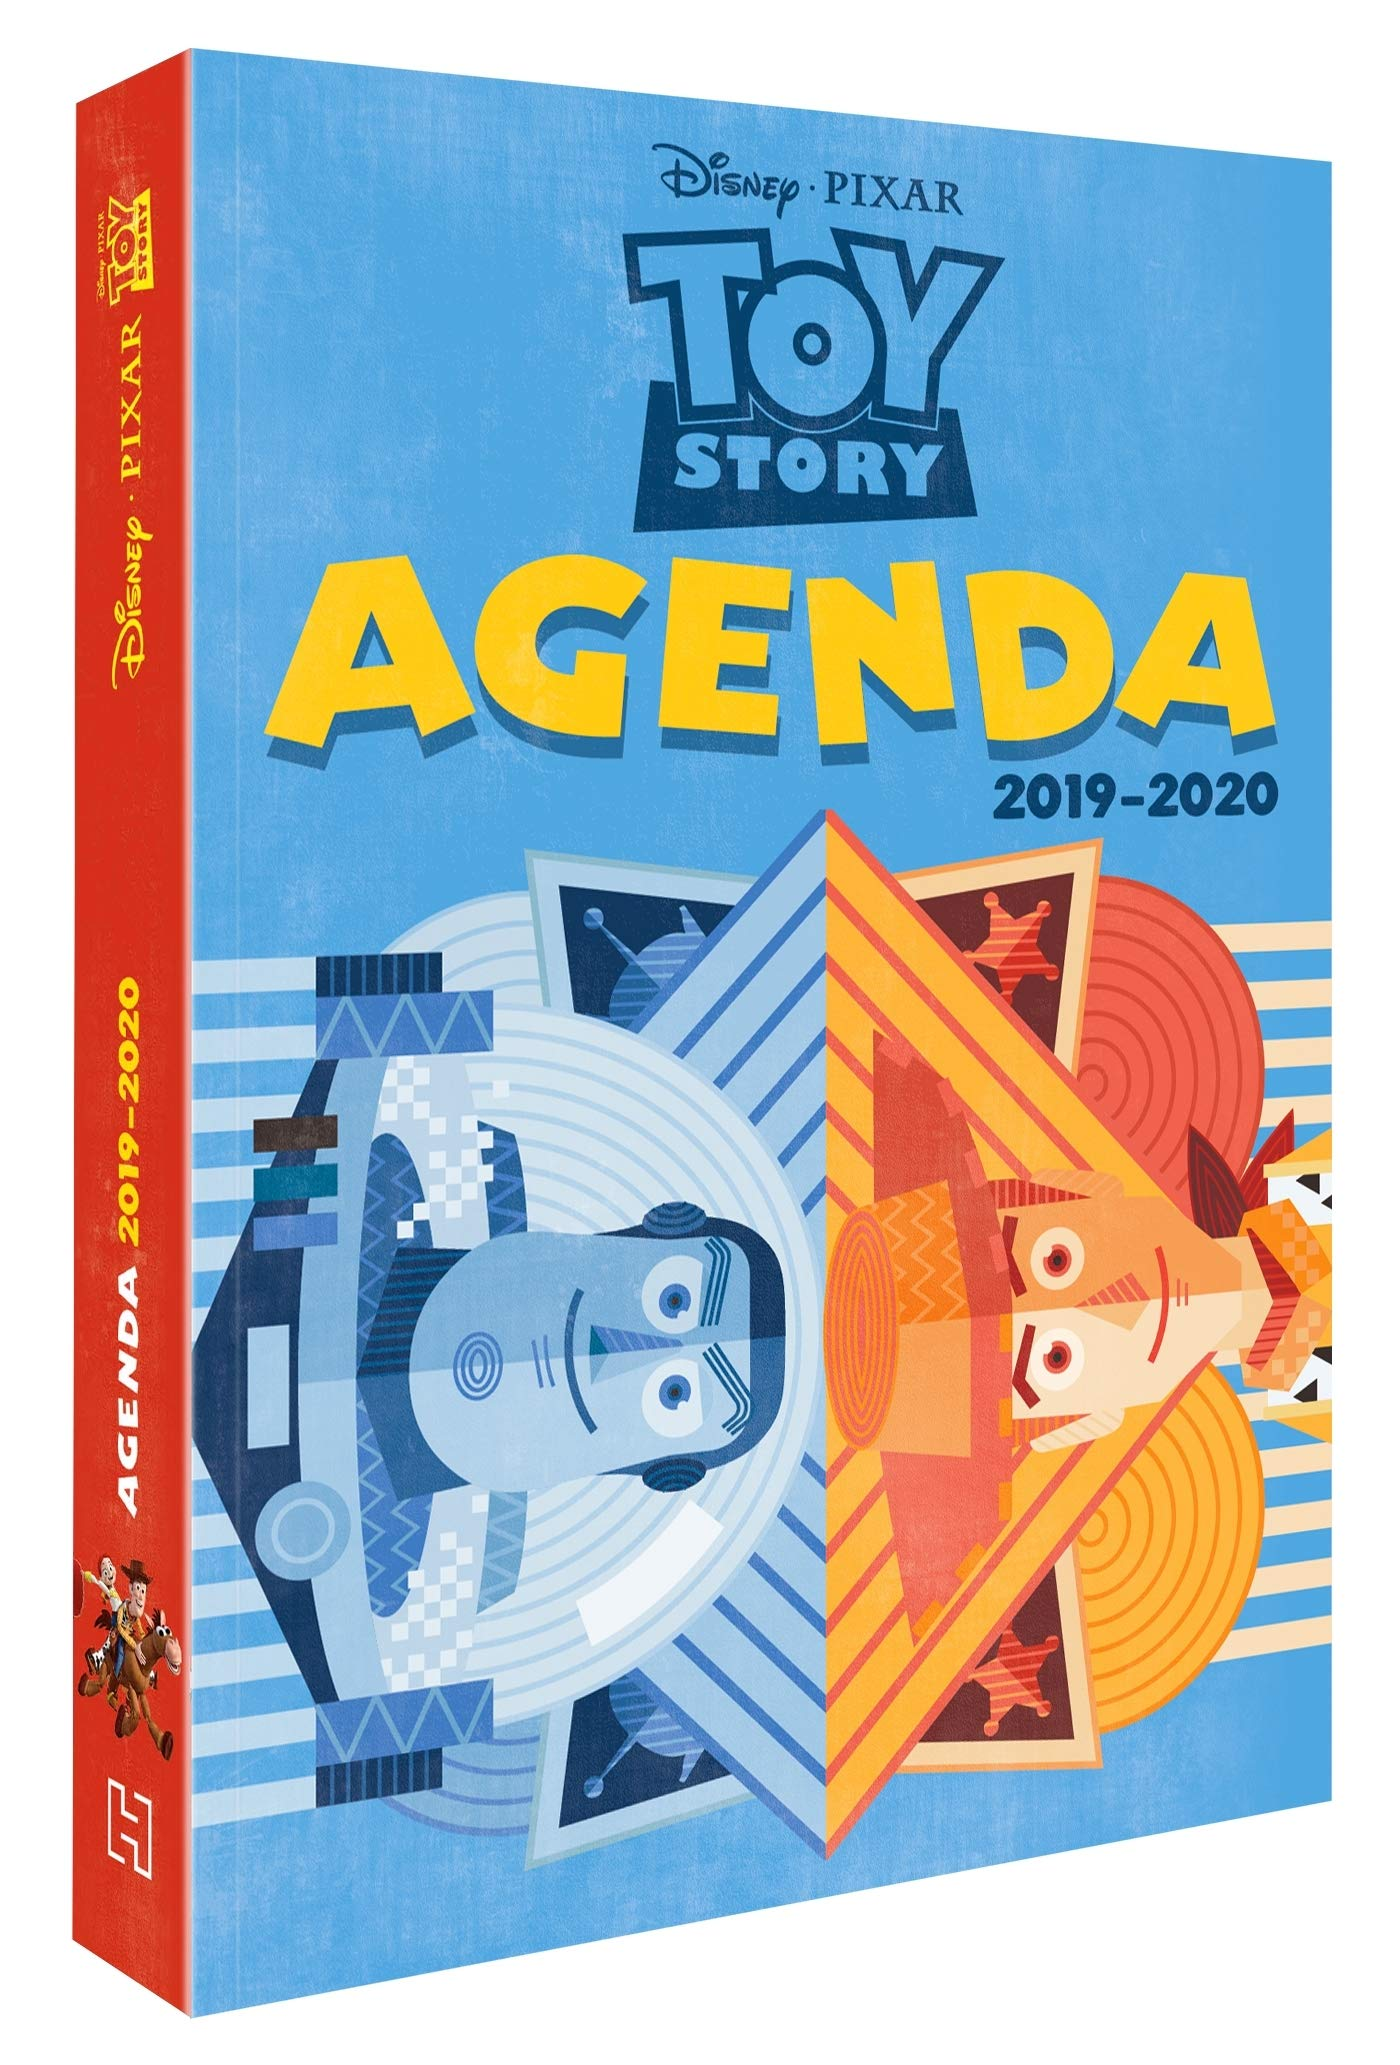 TOY STORY - Agenda 2019-2020 - Disney Pixar: Amazon.es ...